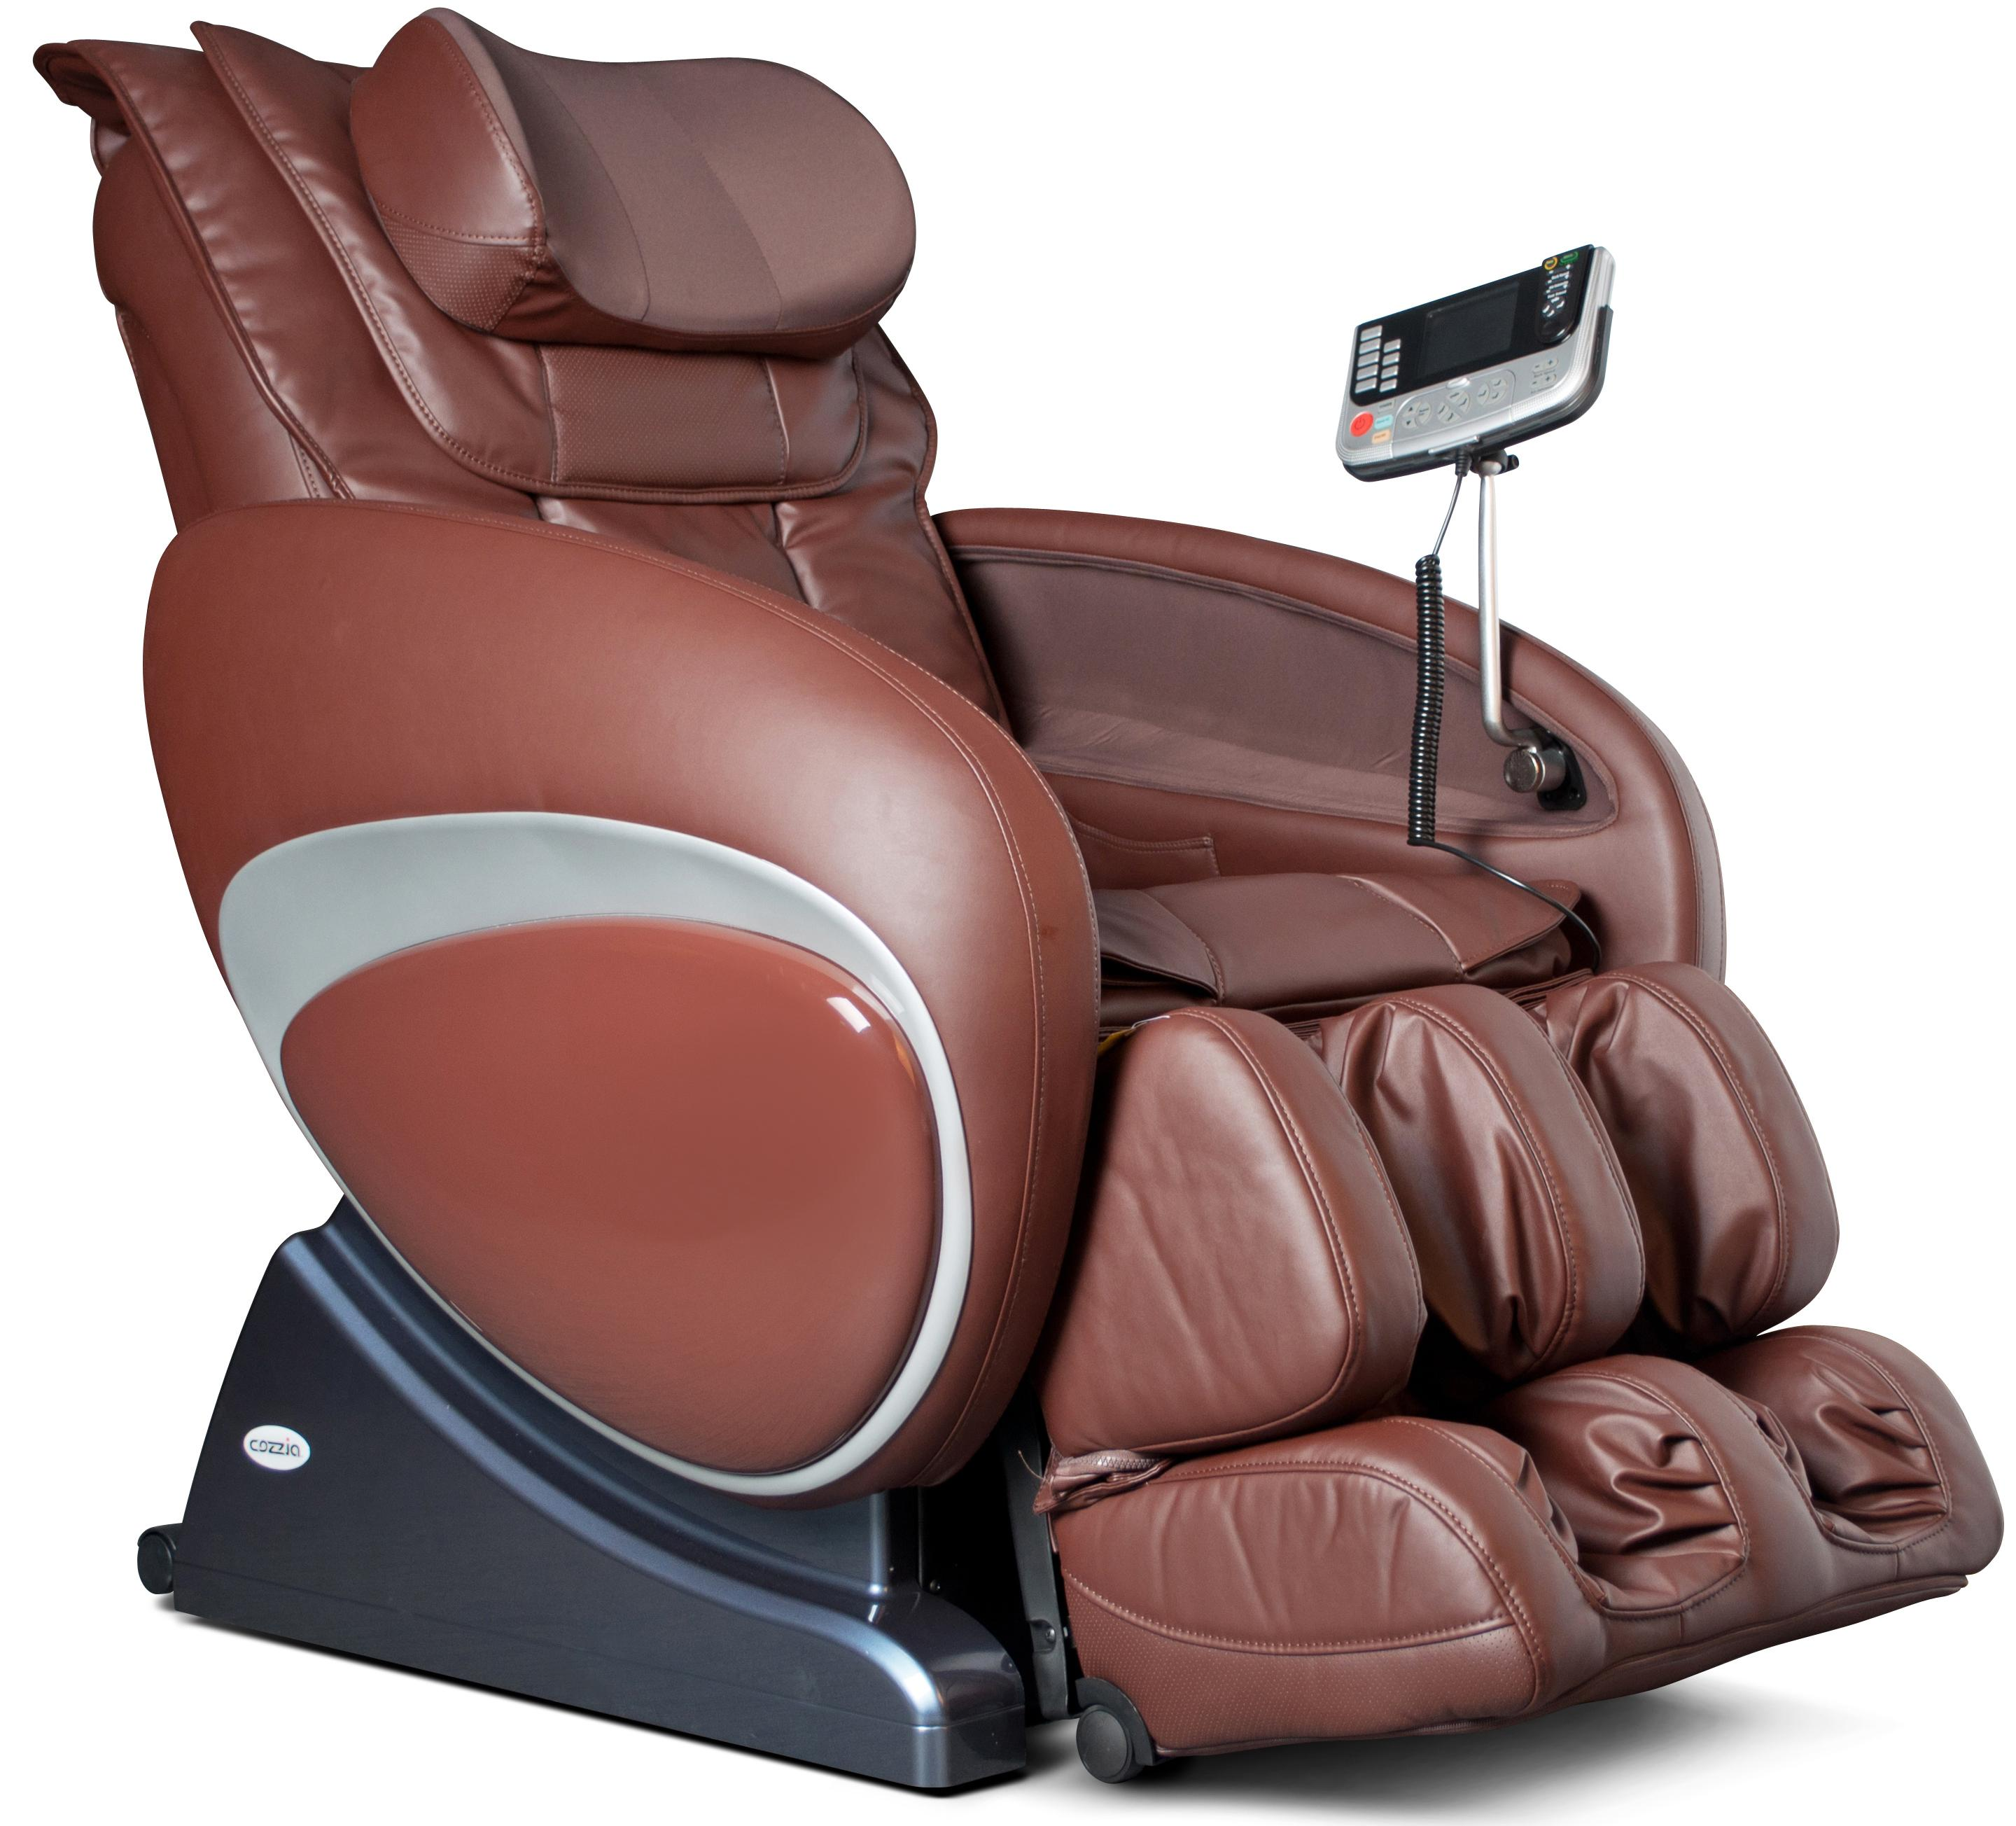 16027 Massage Recliner by Cozzia at Furniture Superstore - Rochester, MN